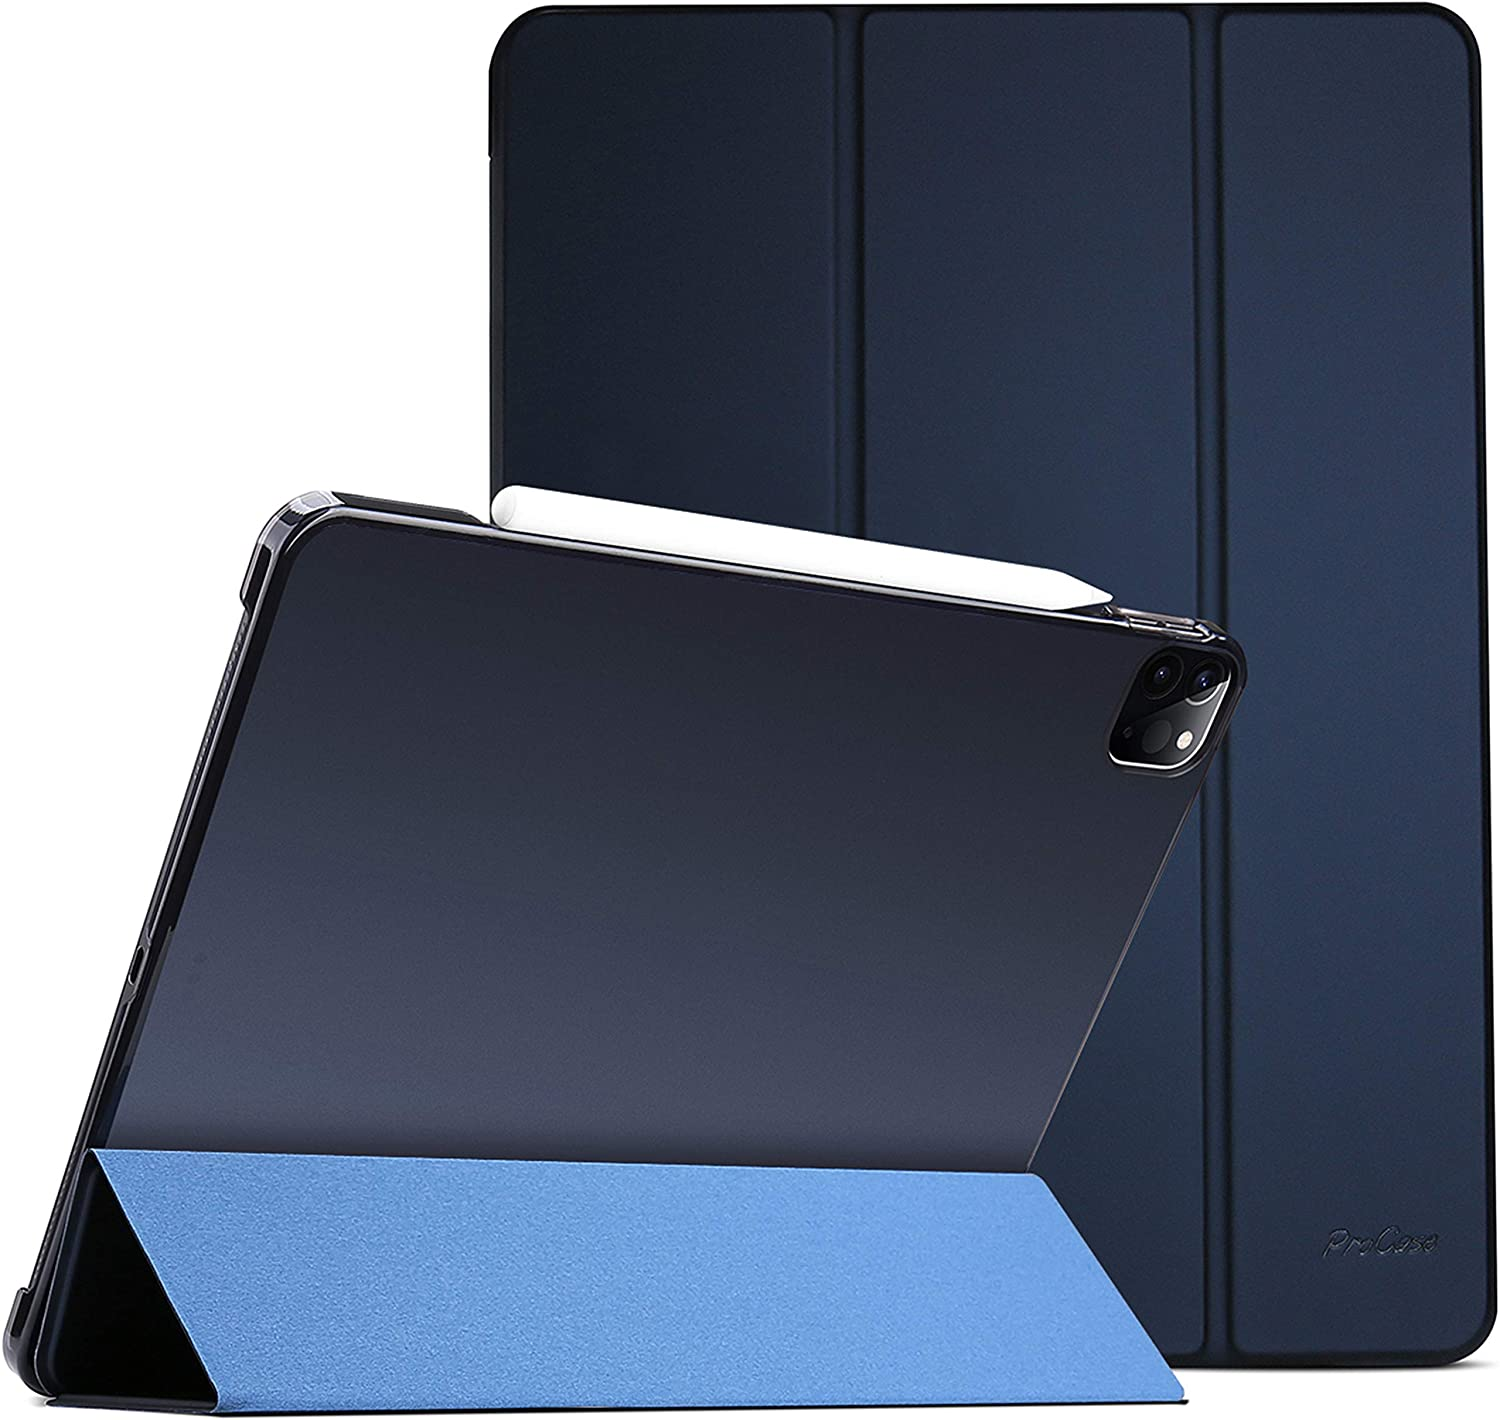 """ProCase iPad Pro 12.9 Case 4th Generation 2020 & 2018, [Support Apple Pencil 2 Charging] Slim Stand Hard Back Shell Smart Cover for iPad Pro 12.9"""" 4th Gen 2020 / iPad Pro 12.9"""" 3rd Gen 2018 –Navy"""